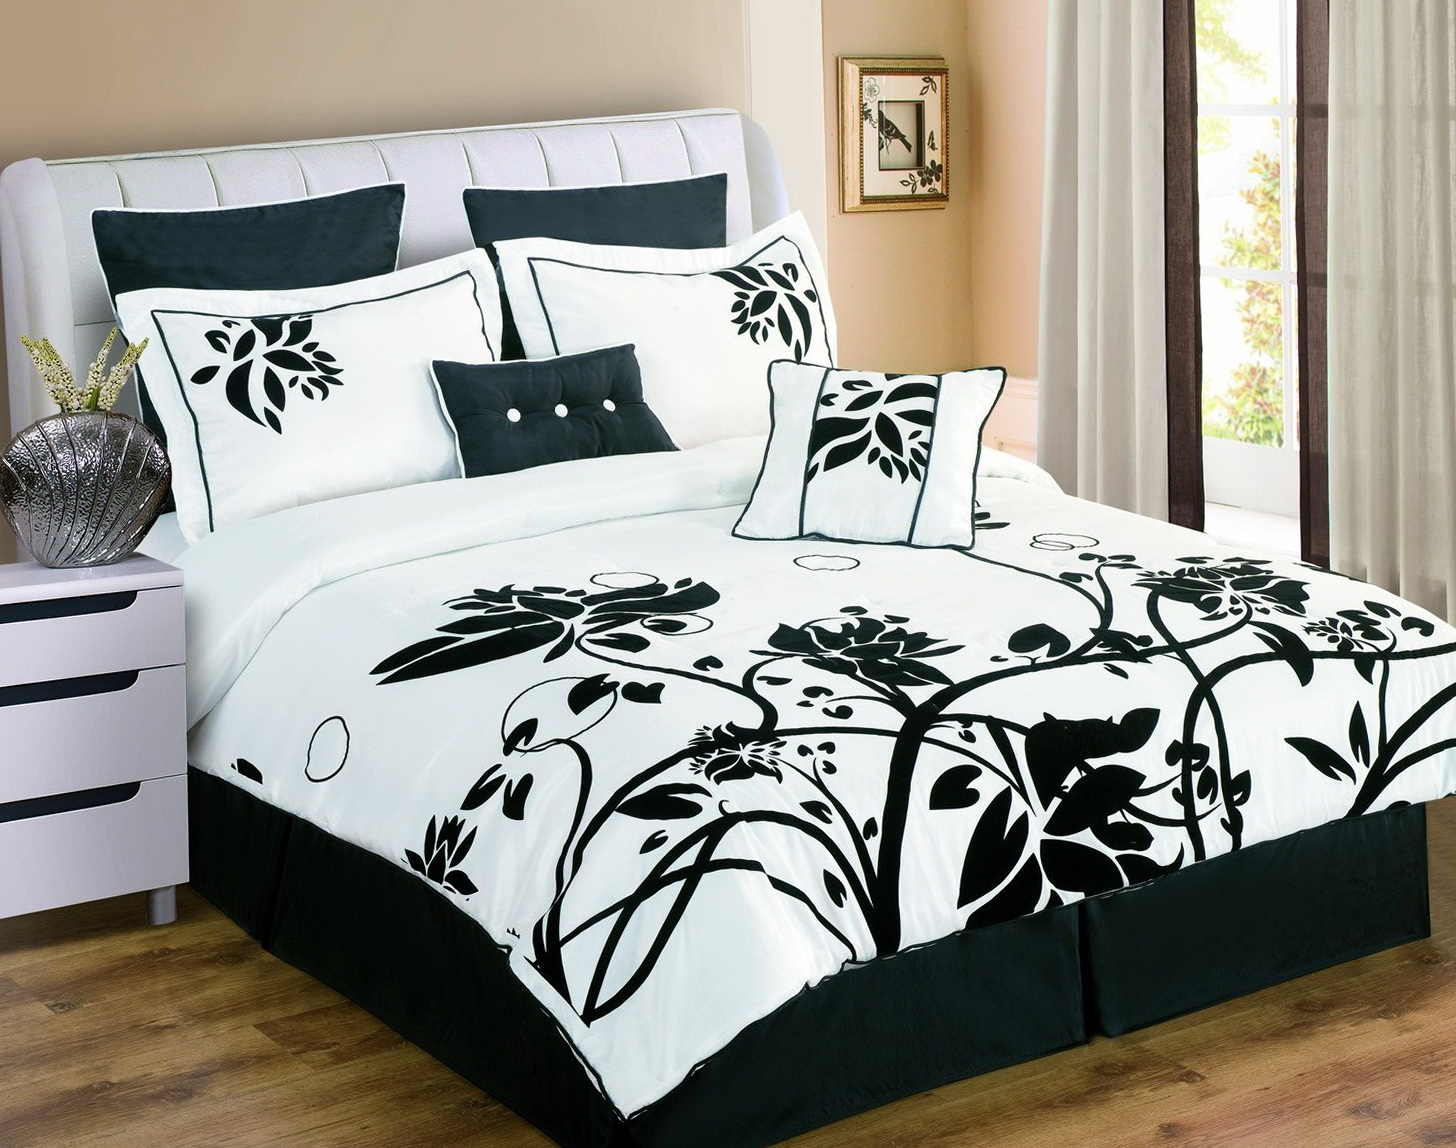 Black And White Bed Sets For Girls